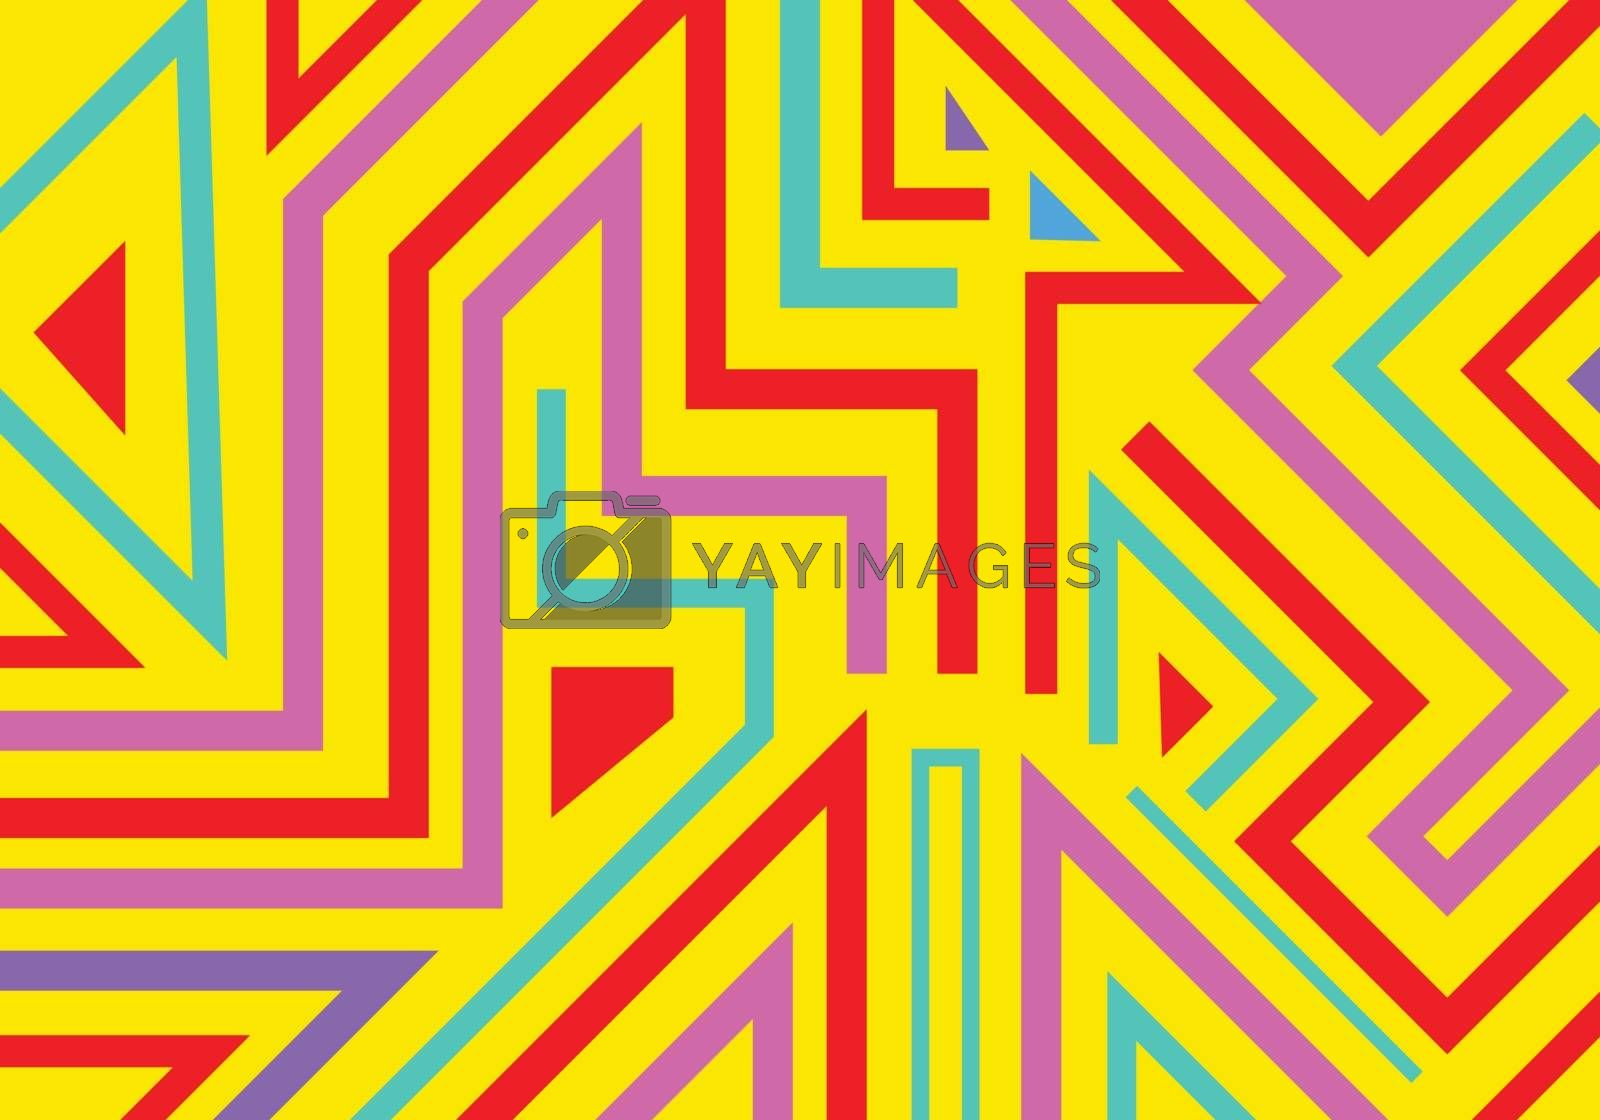 Abstract graffiti geometric shapes and lines pattern background pop art style. Vector illustration